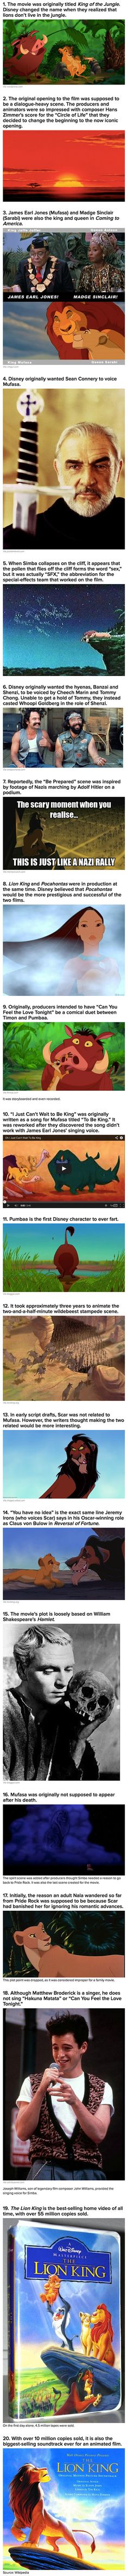 Here are some interesting things that you may not have known about The Lion King.